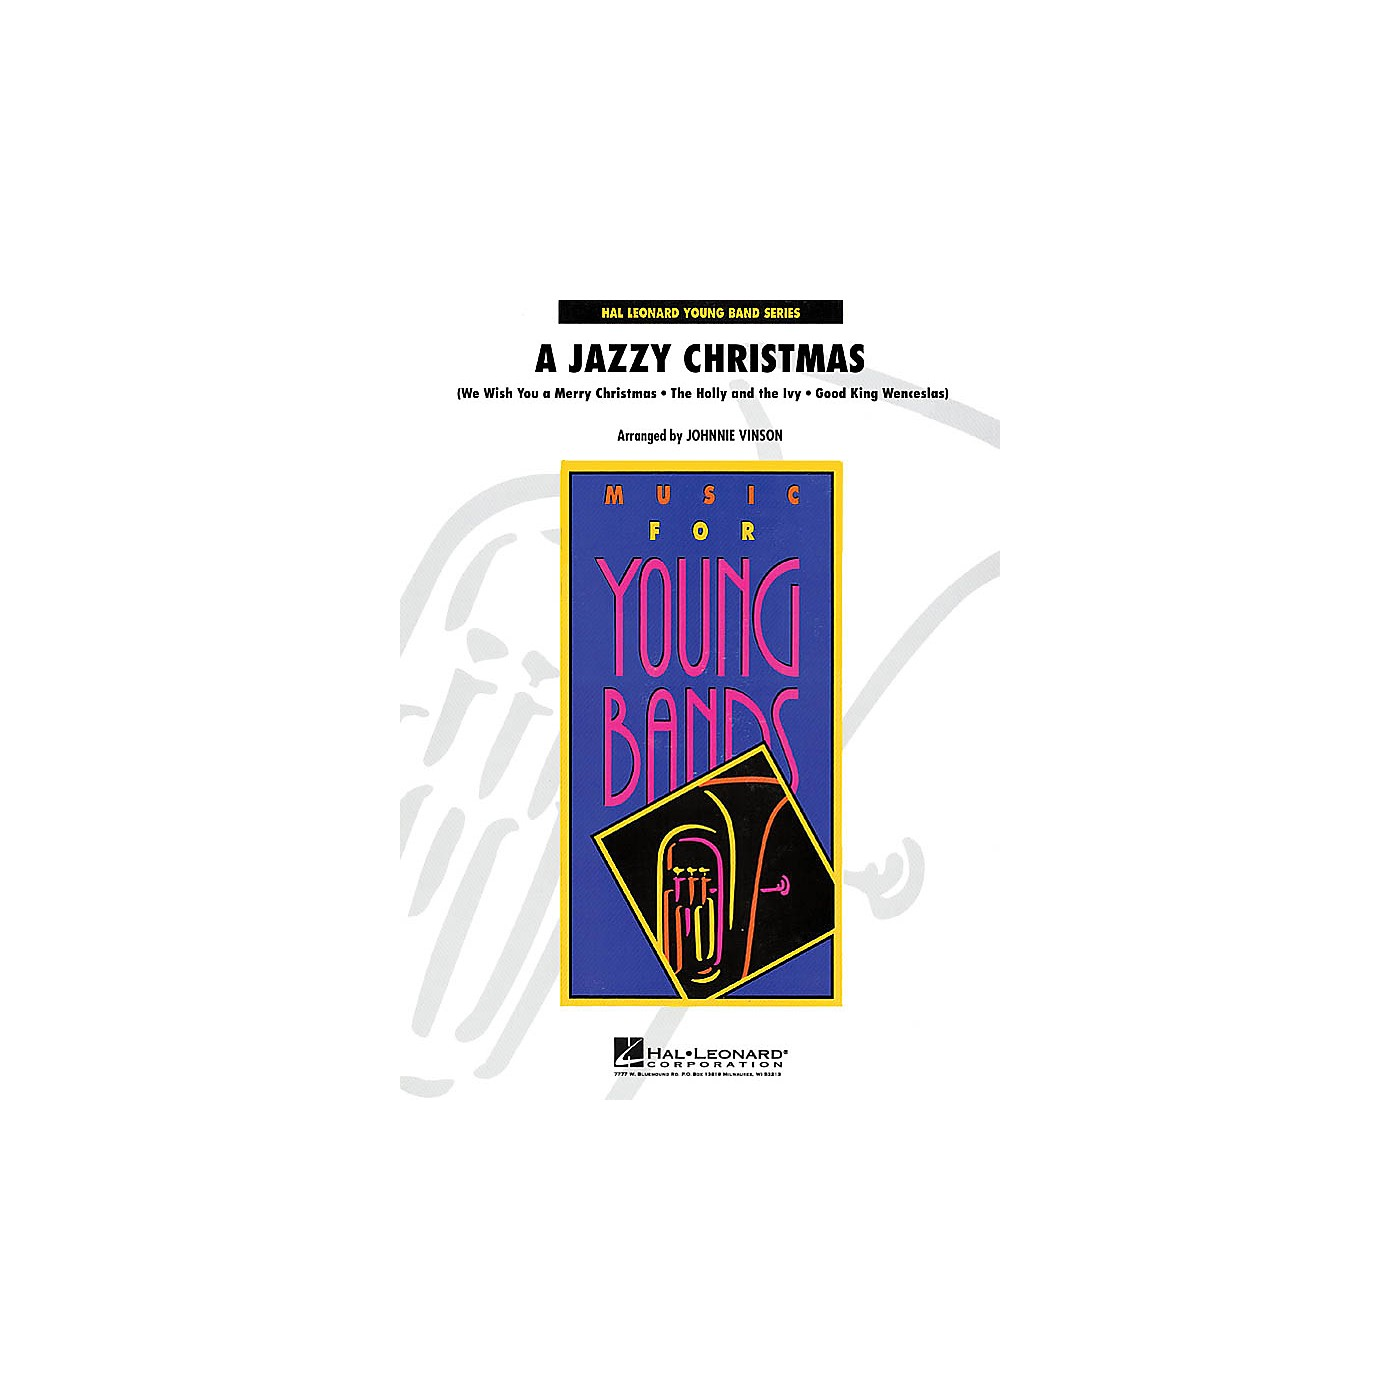 Hal Leonard A Jazzy Christmas - Young Concert Band Series Level 3 arranged by Johnnie Vinson thumbnail